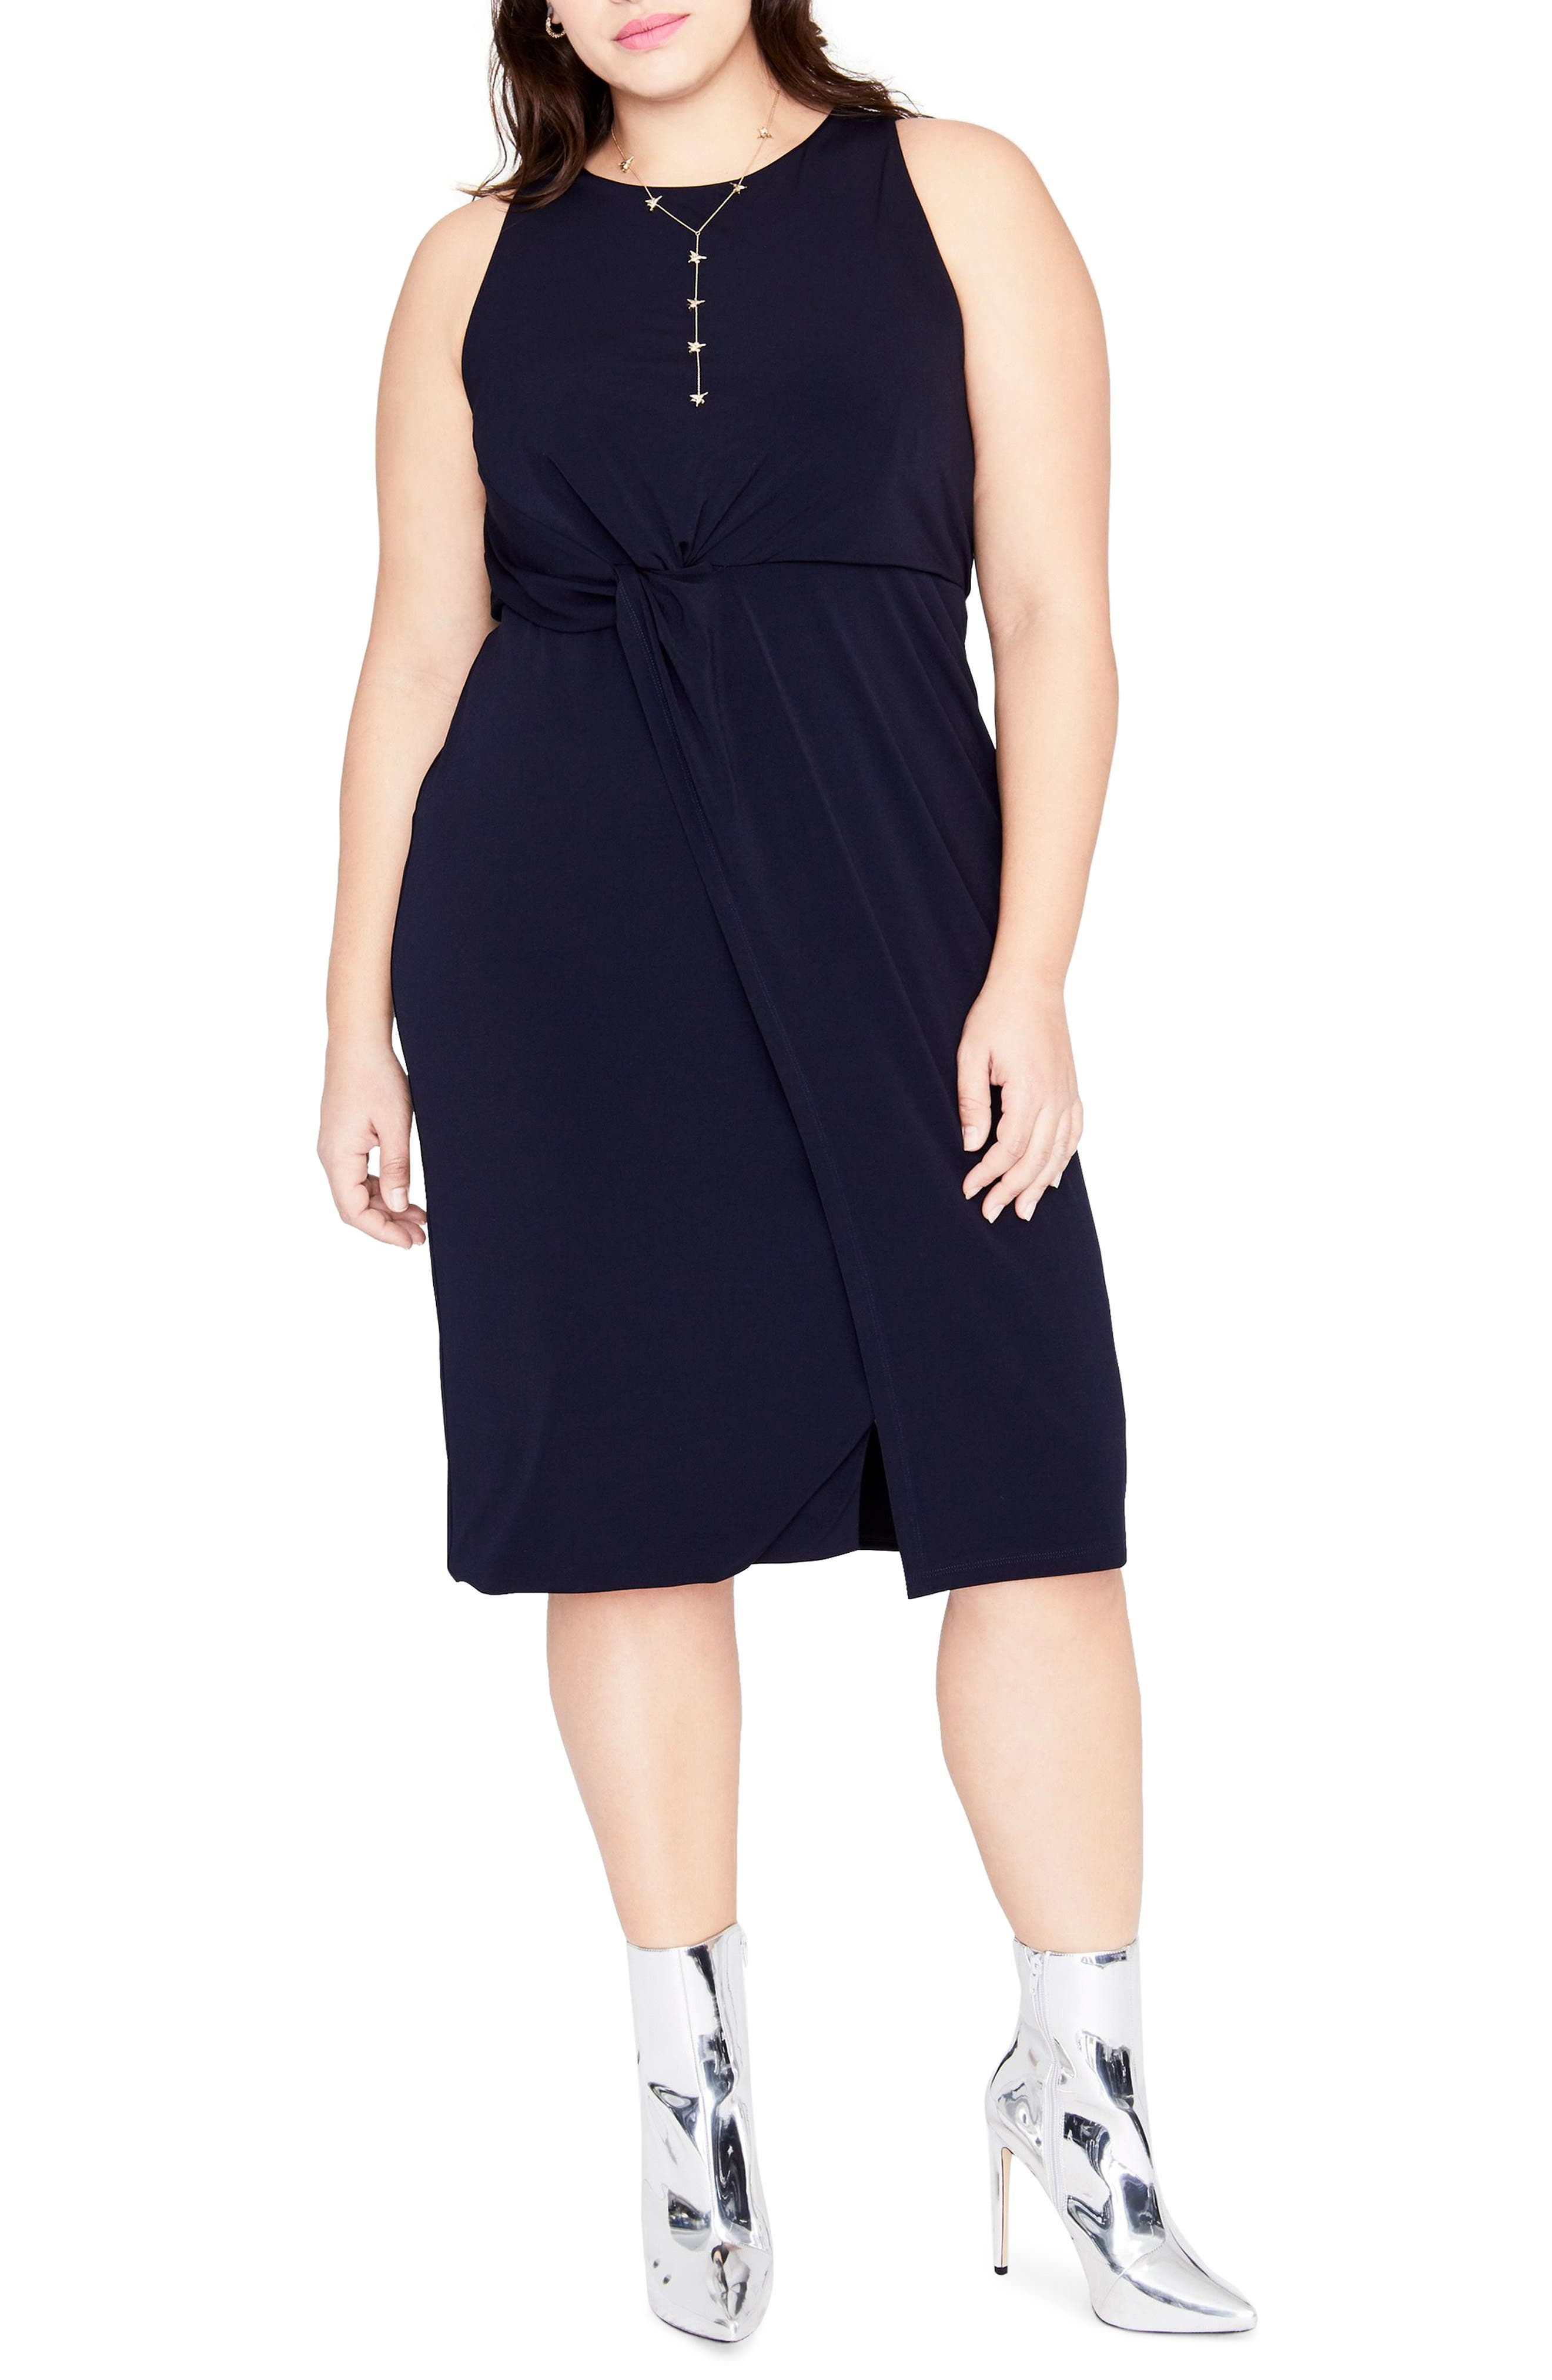 Alternate Image 1 Selected - RACHEL Rachel Roy Twist Front Dress (Plus Size)